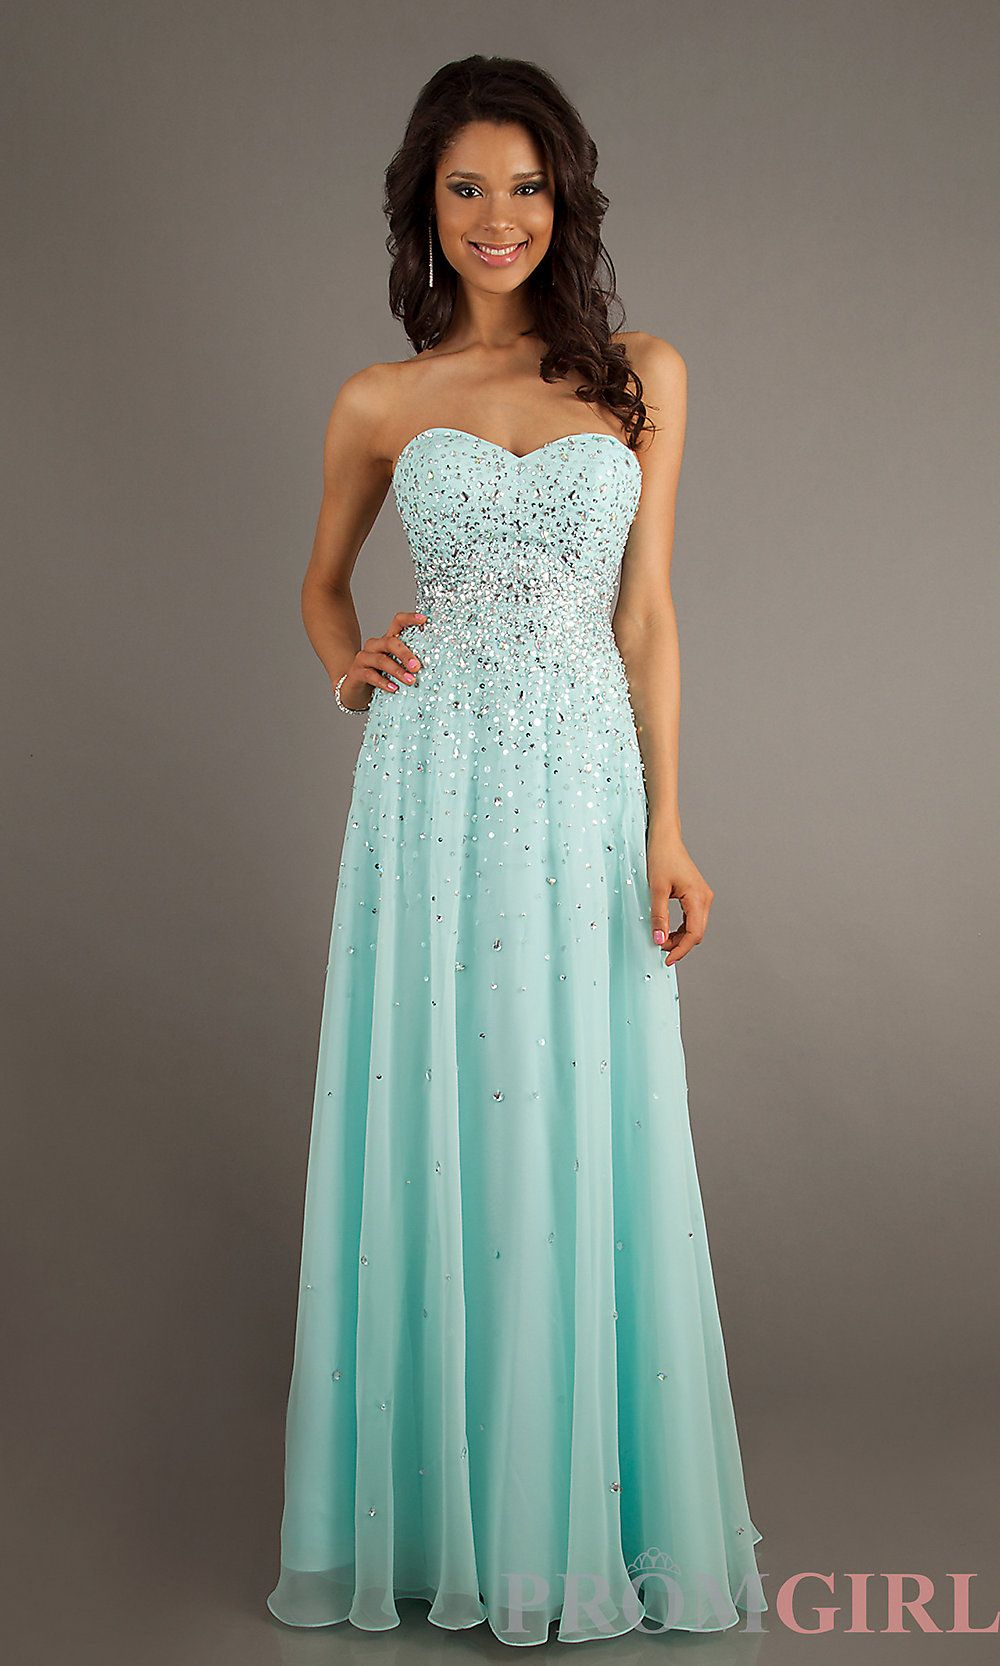 Best 25+ Prom dresses canada ideas on Pinterest | Evening ...